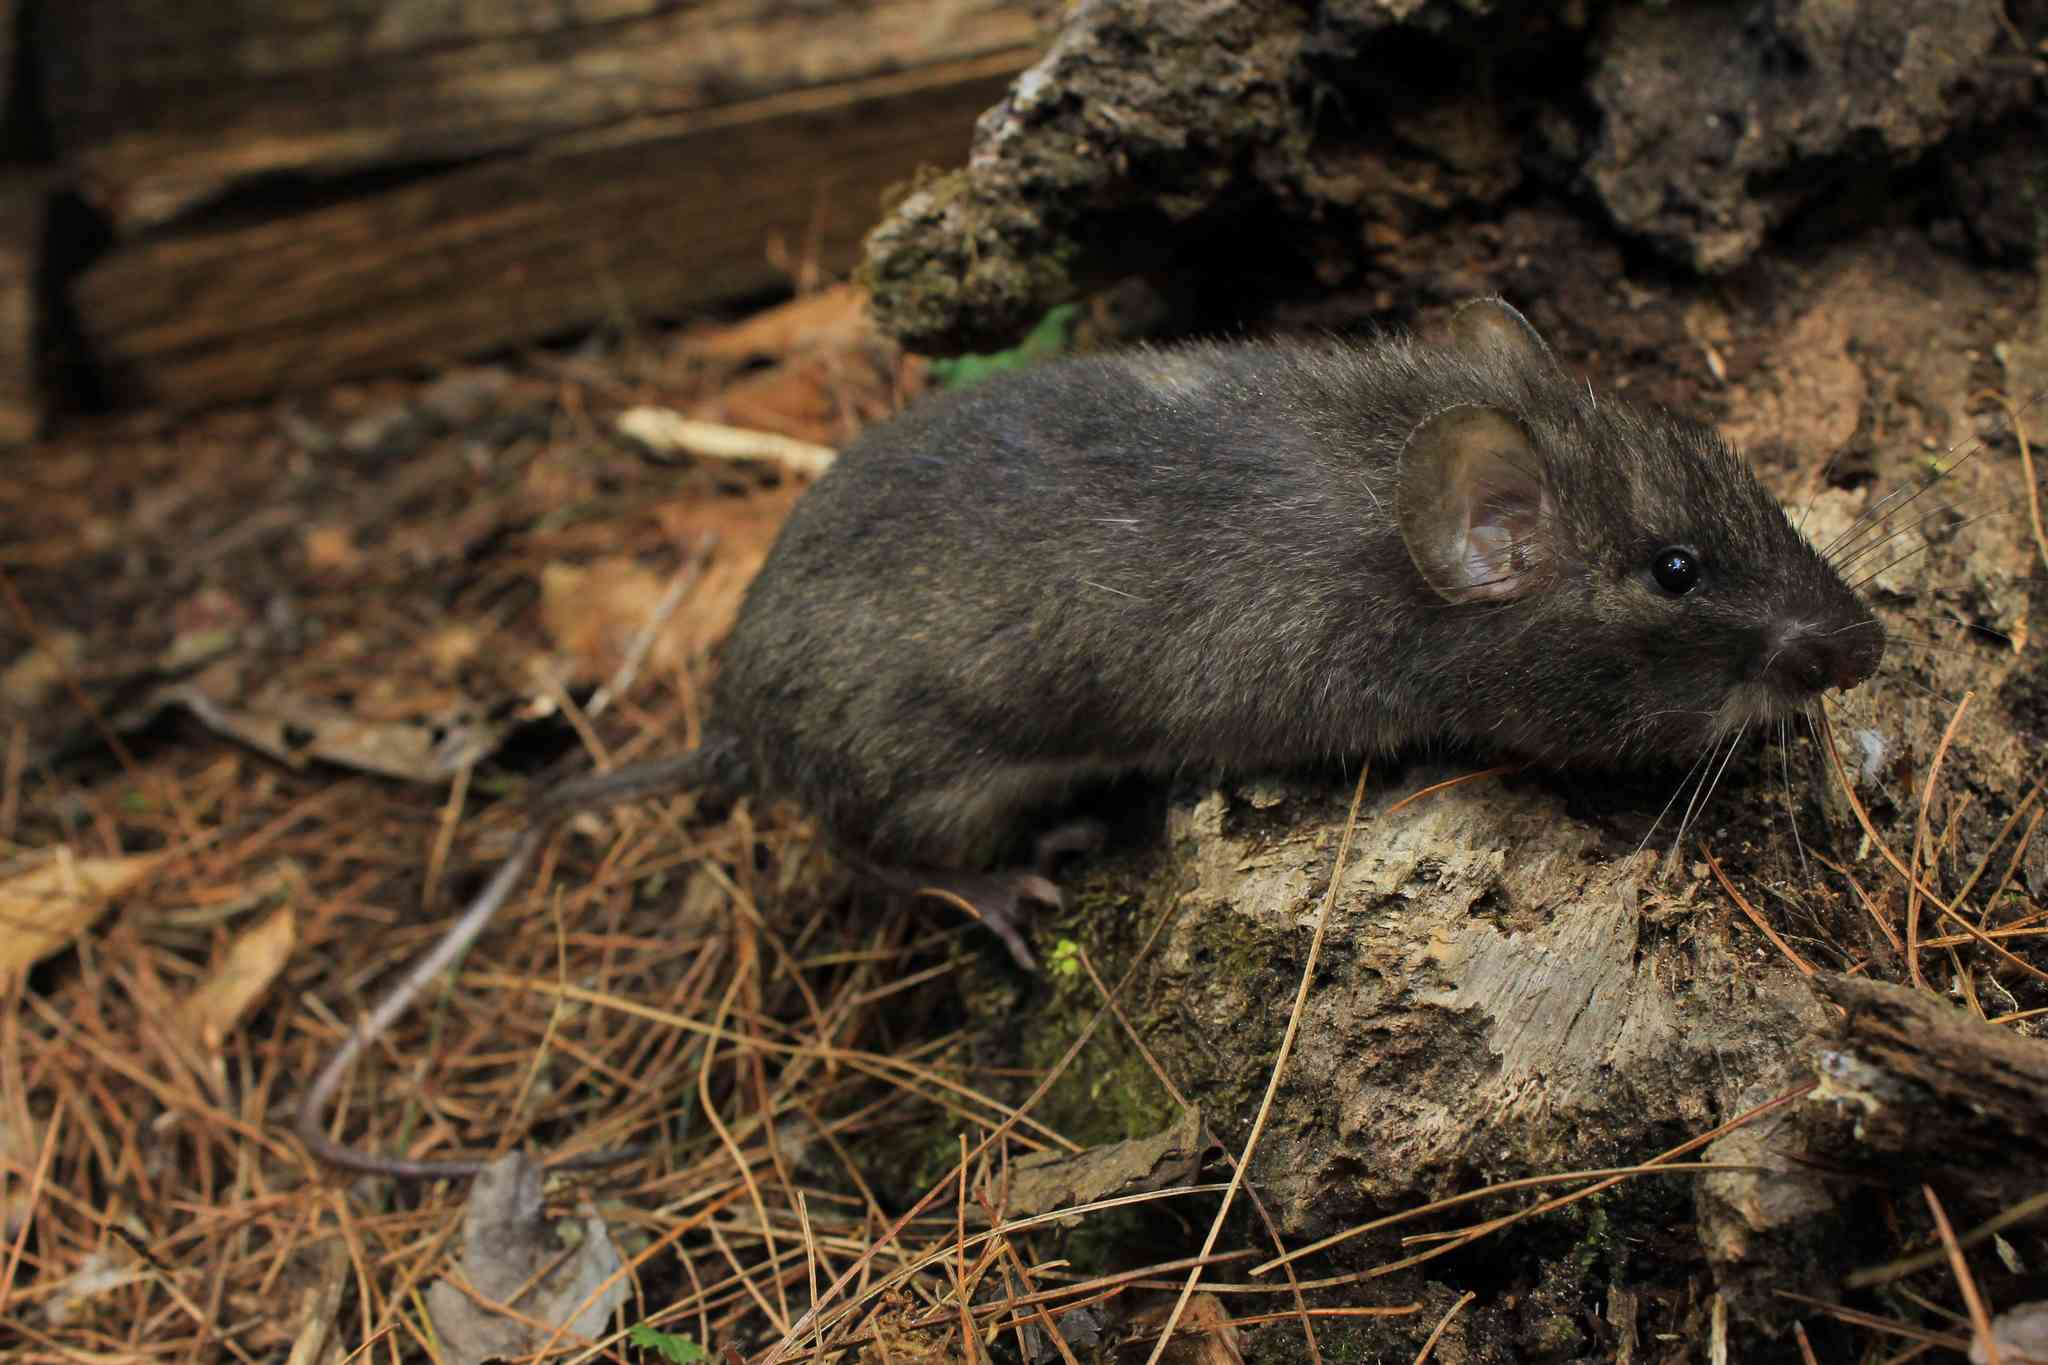 A grey Nelson's spiny pocket mouse sitting on a rock surrounded by pine needles.